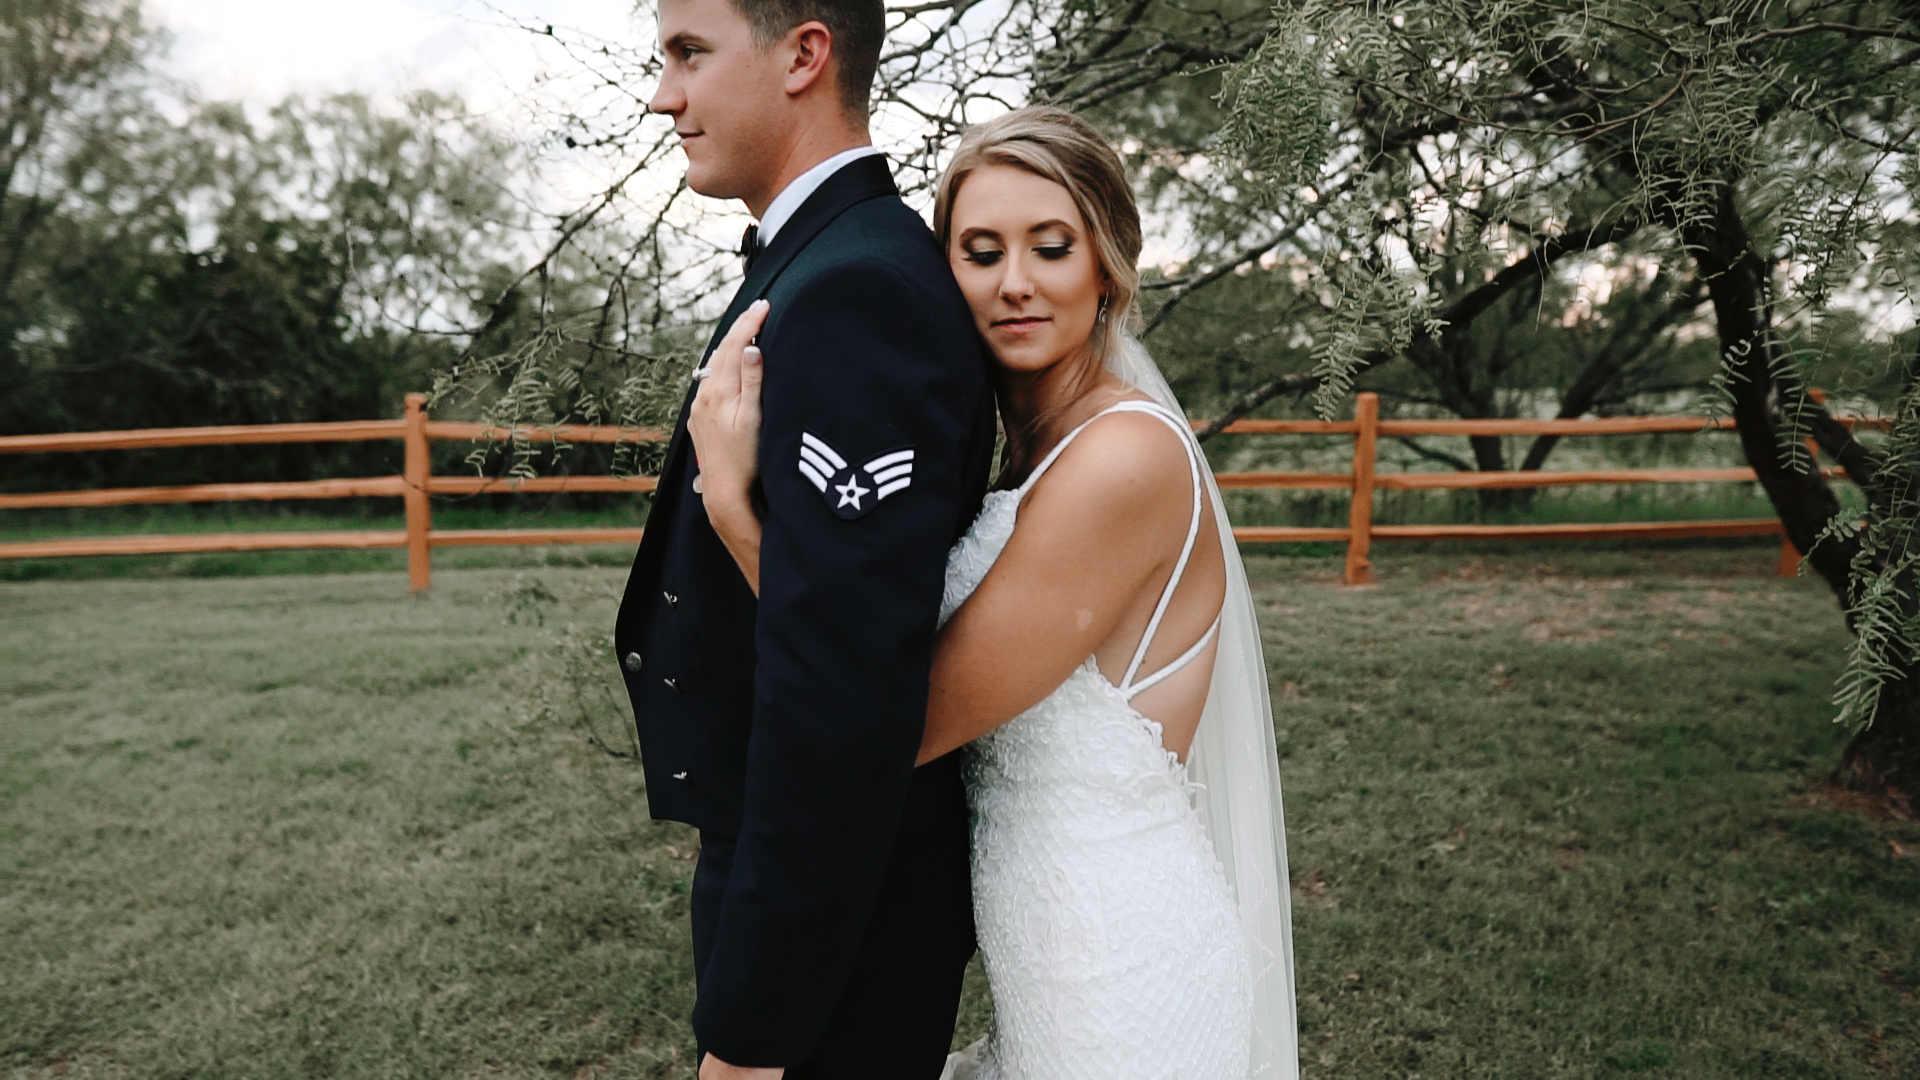 Kaylee + Kelly | Waco, Texas | Deerfield Estates